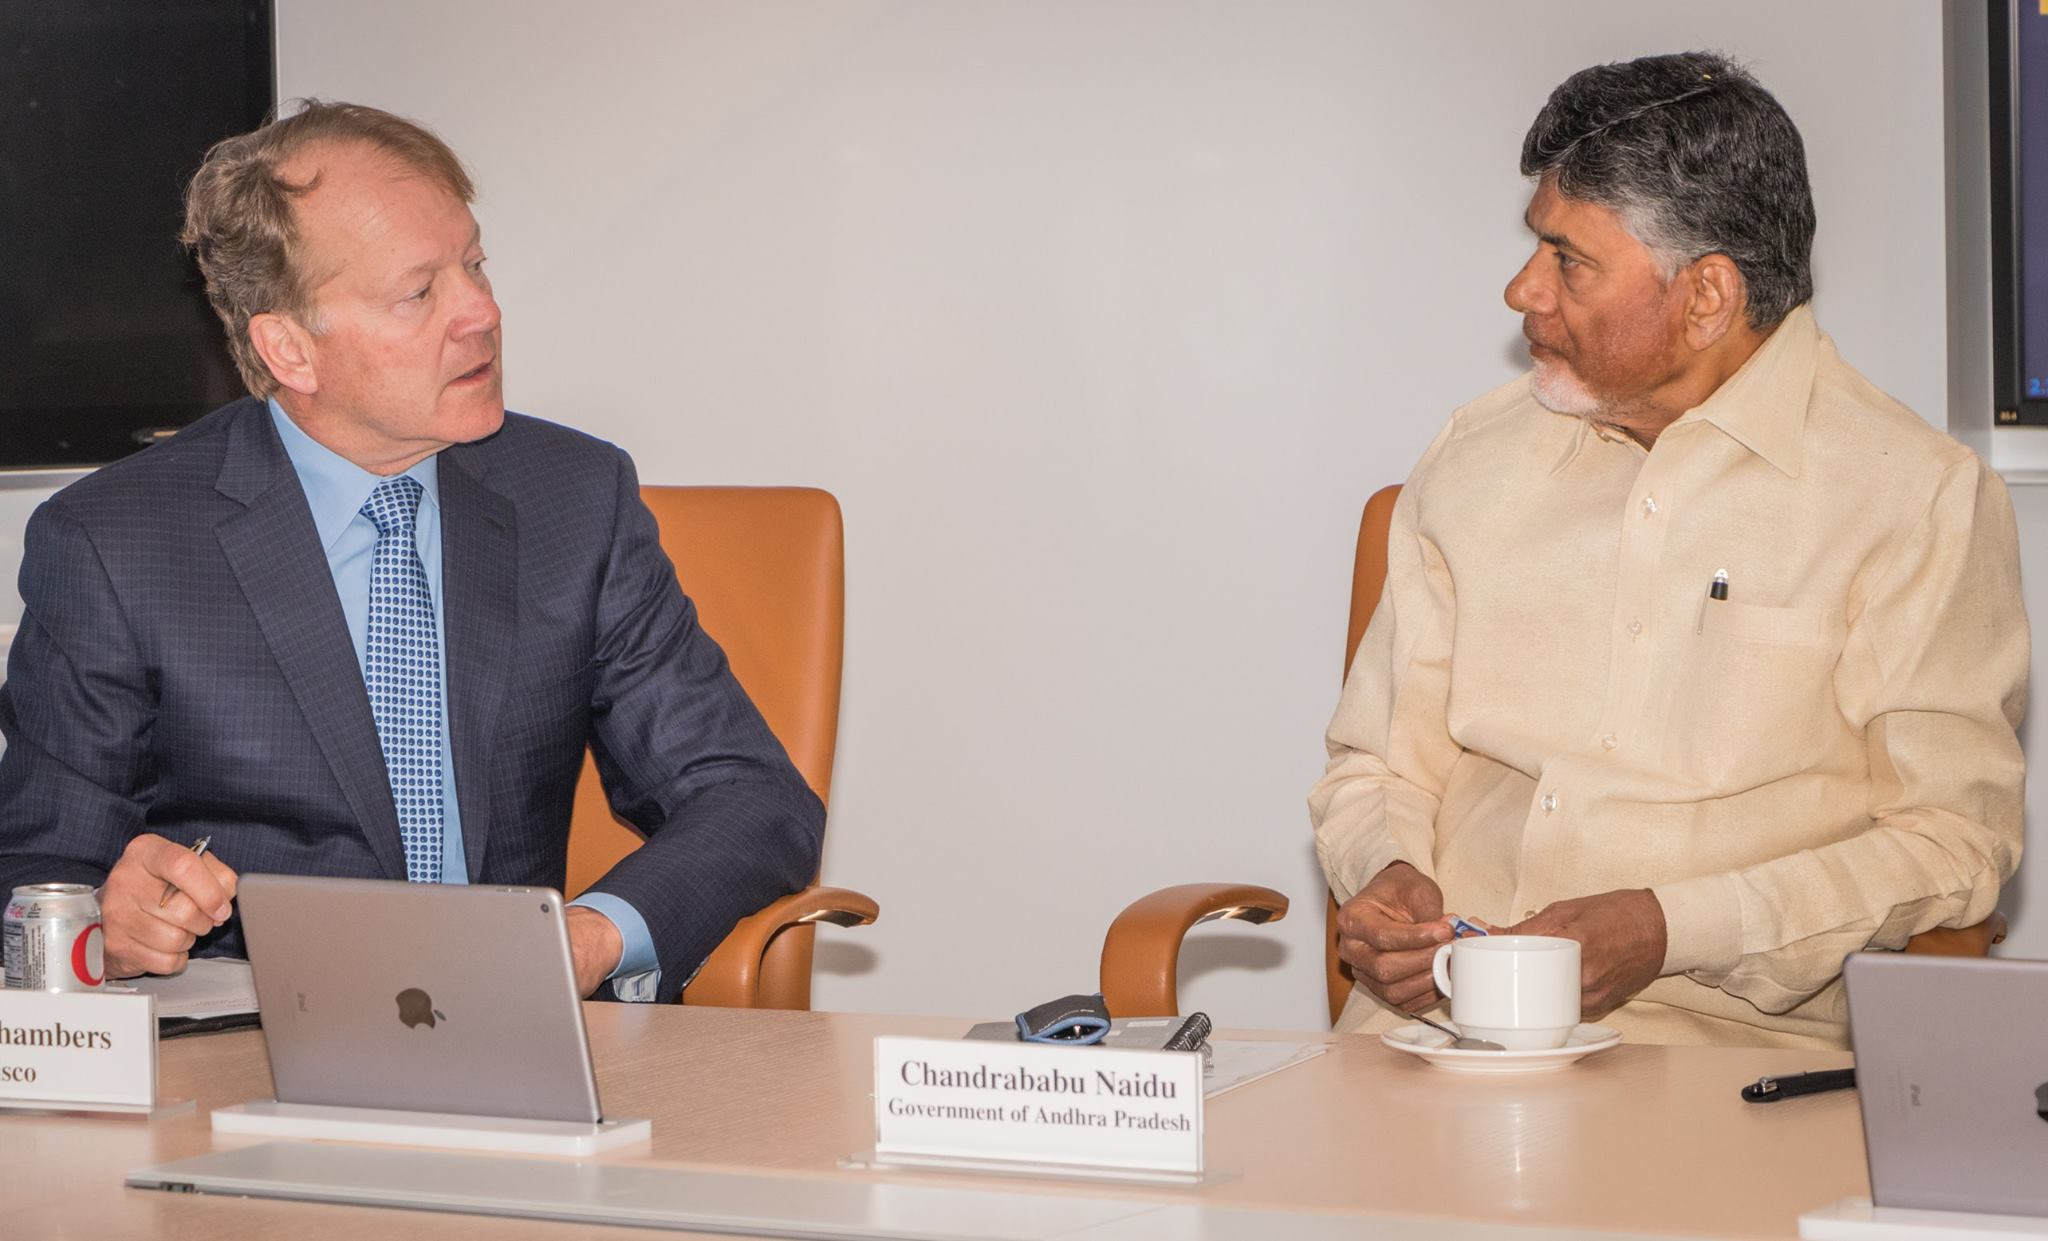 Cisco System chairman John Chambers and Andhra Pradesh chief minister N Chandrababu Naidu at Cisco headquarters.